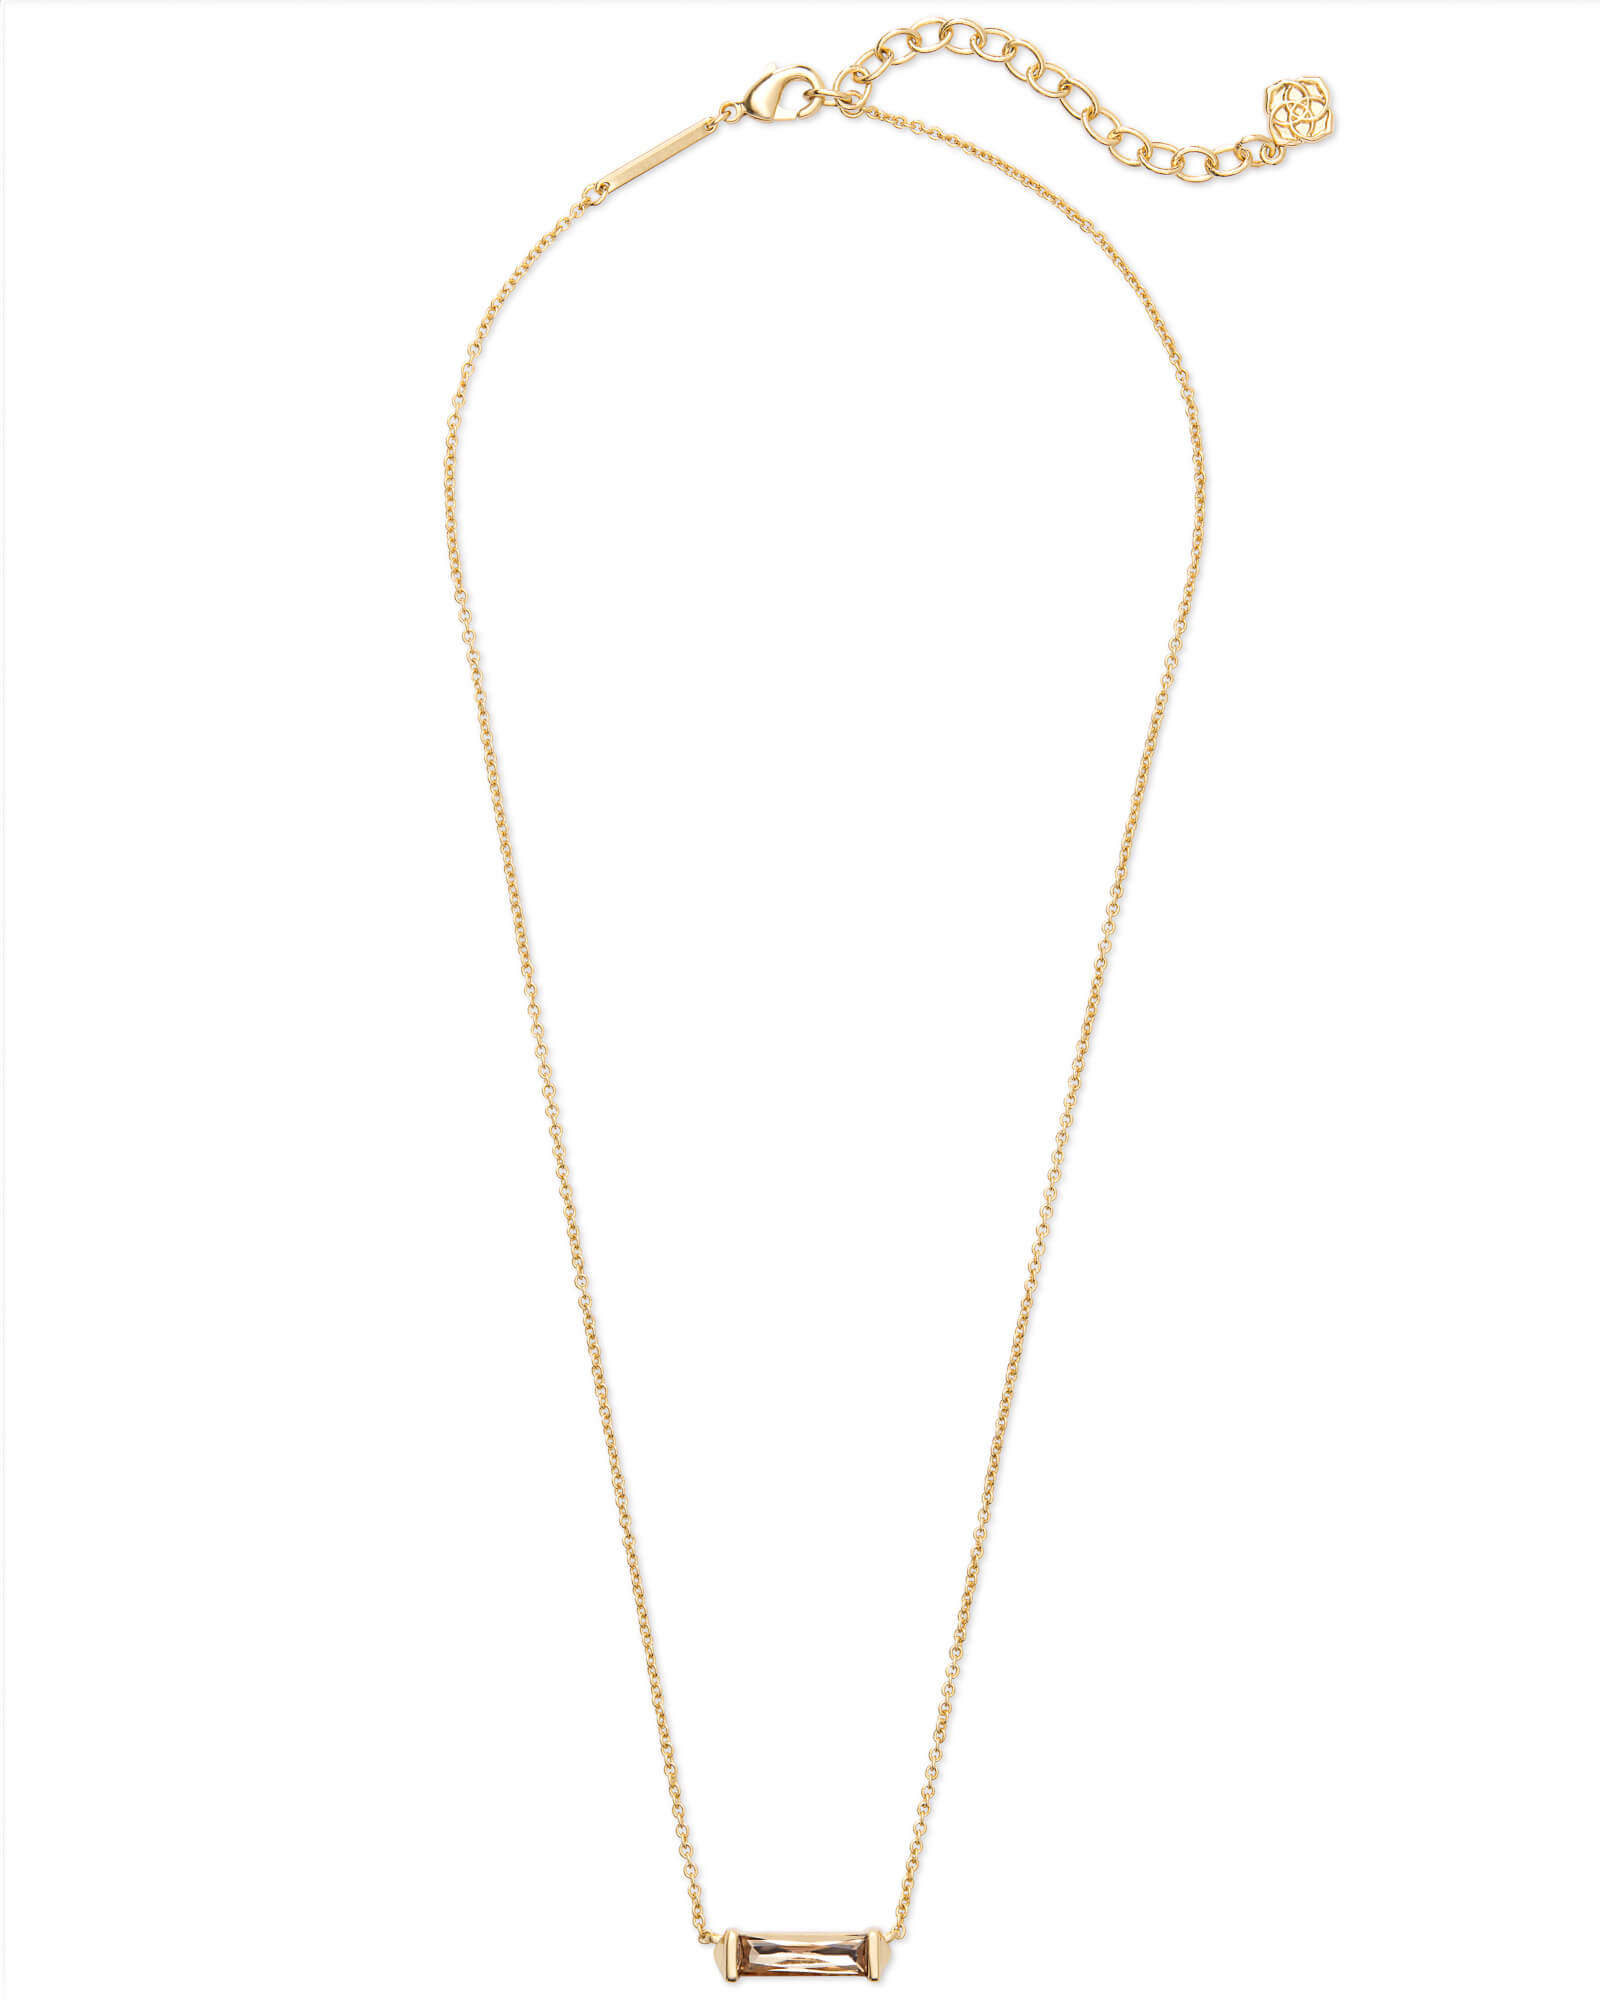 Rufus Gold Pendant Necklace in Smoky Crystal